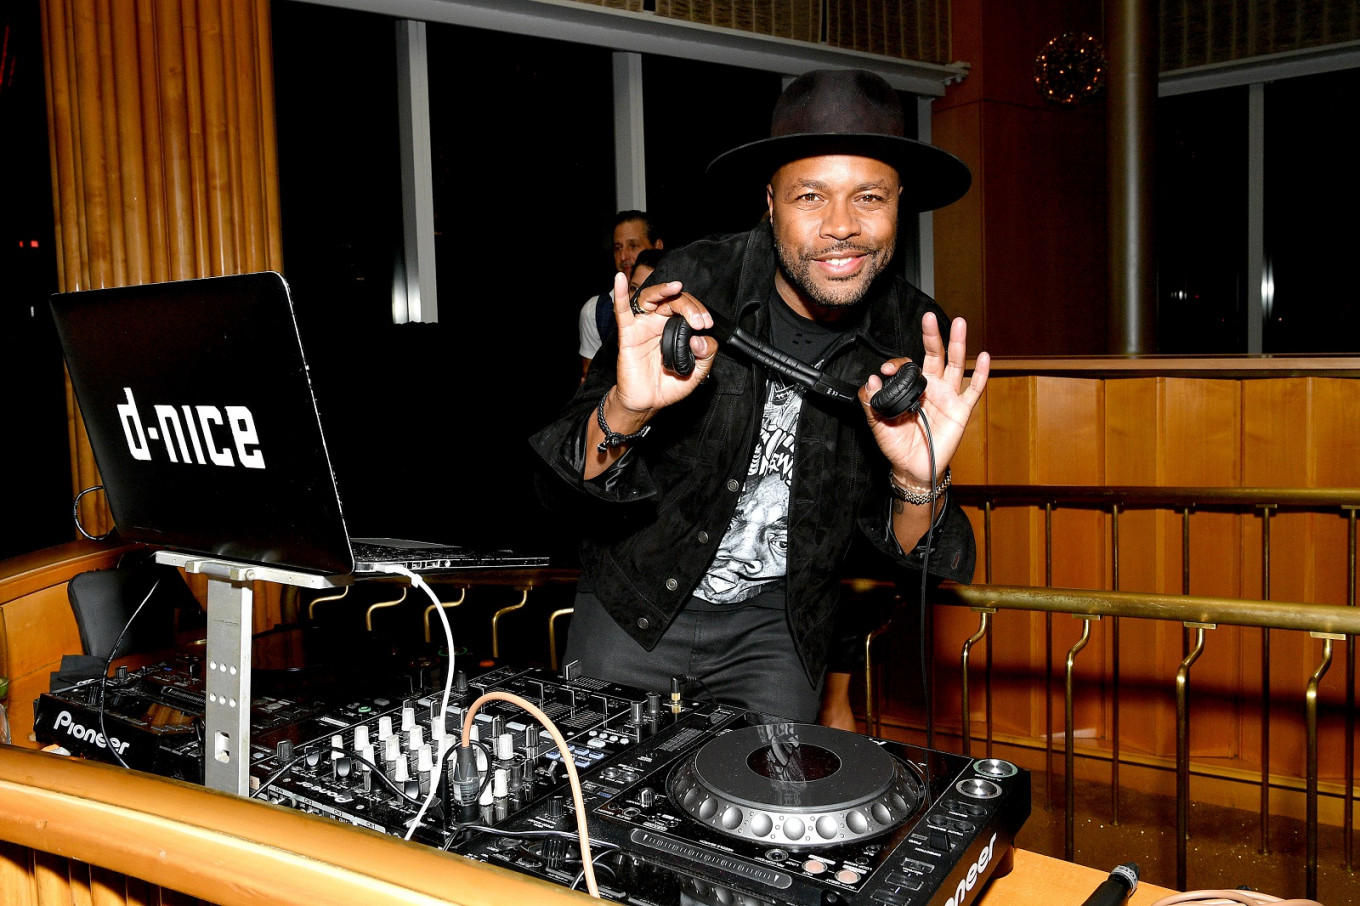 Don't stop the music: DJ hosts 10-hour Instagram dance party